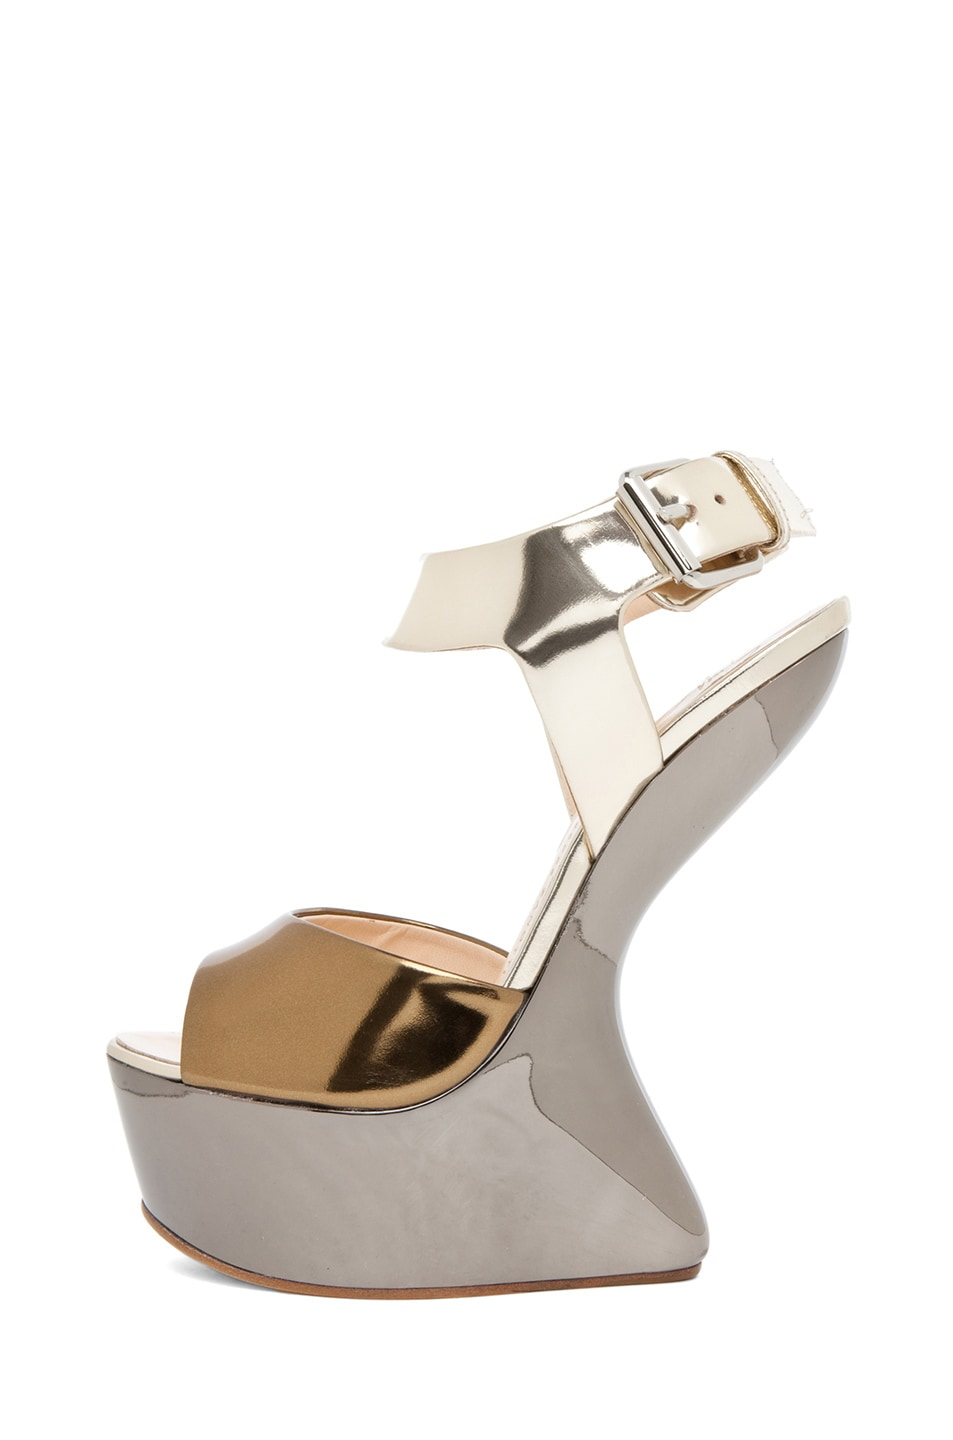 Image 1 of Giuseppe Zanotti Mirrored Wedge Sandal in Mixed Metallic